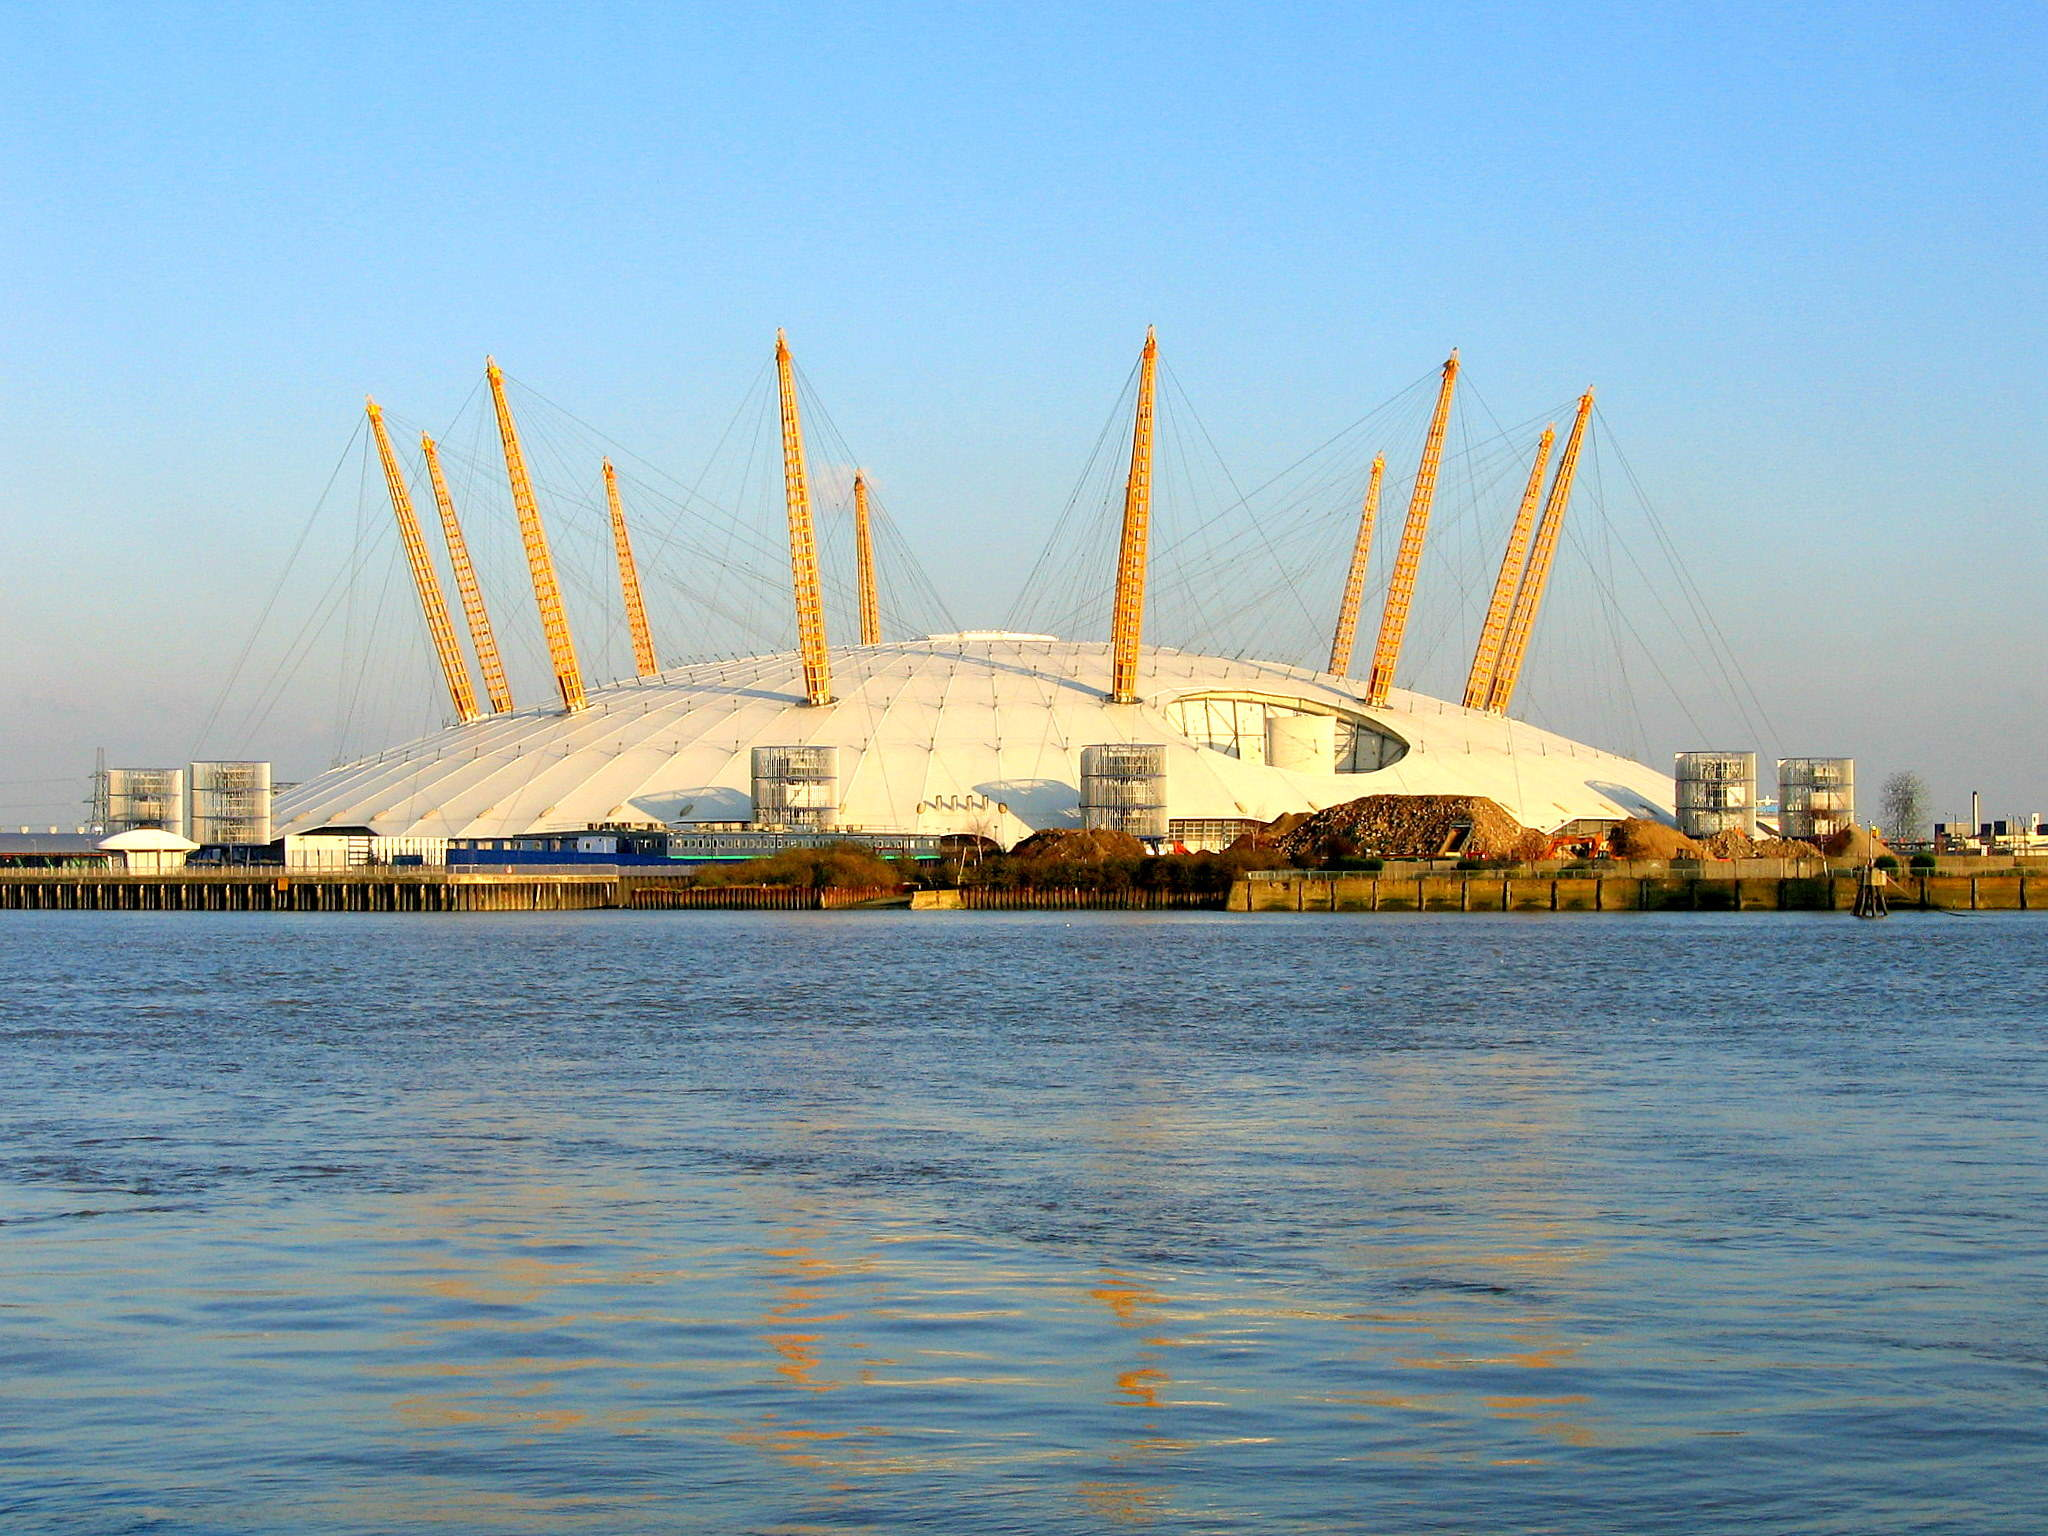 Millennium Dome, delayed construction projects in the UK